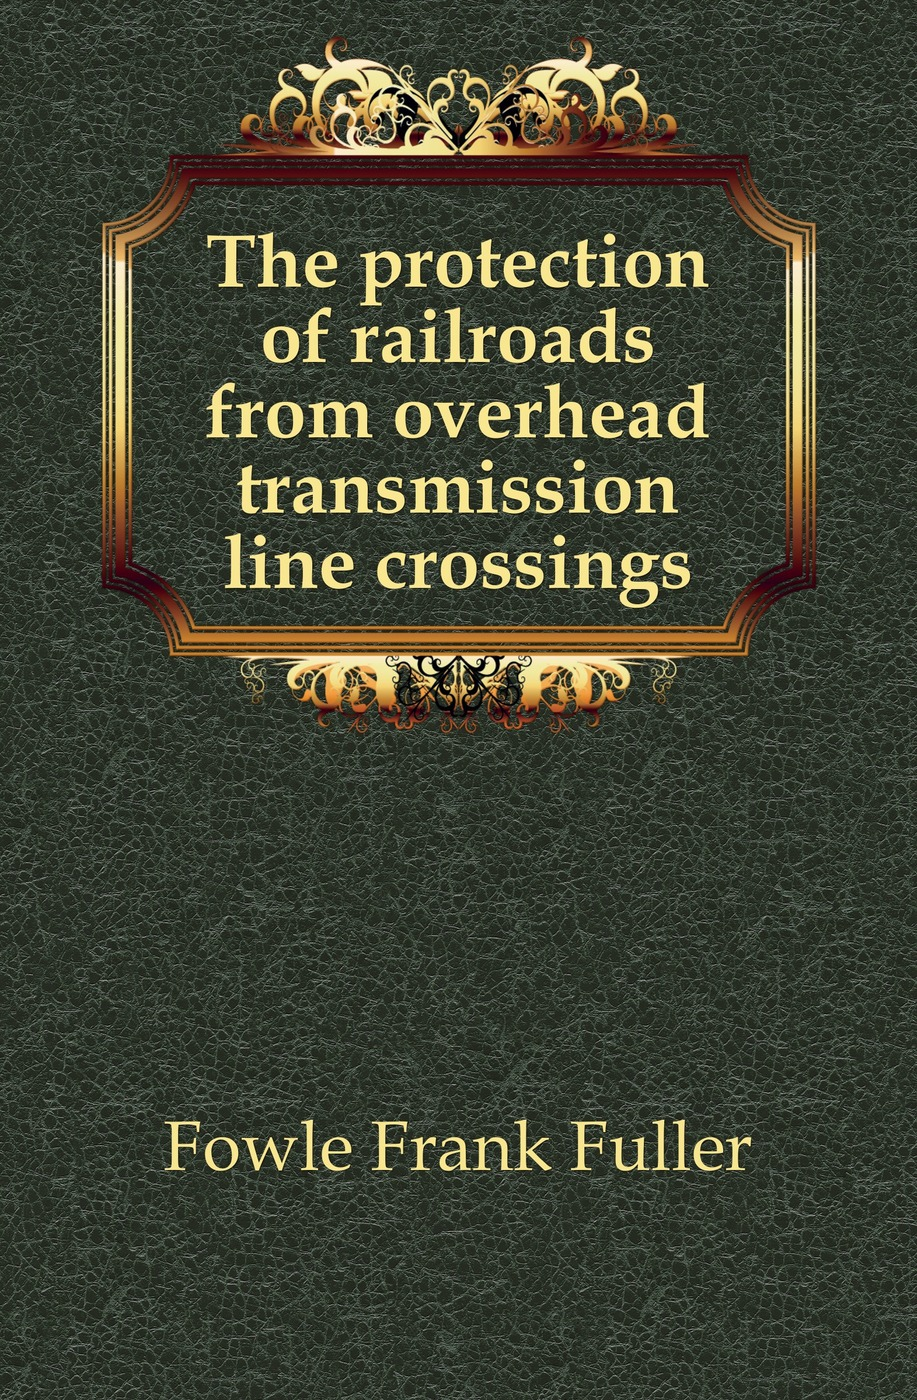 Fowle Frank Fuller The protection of railroads from overhead transmission line crossings catalog fuller transmission